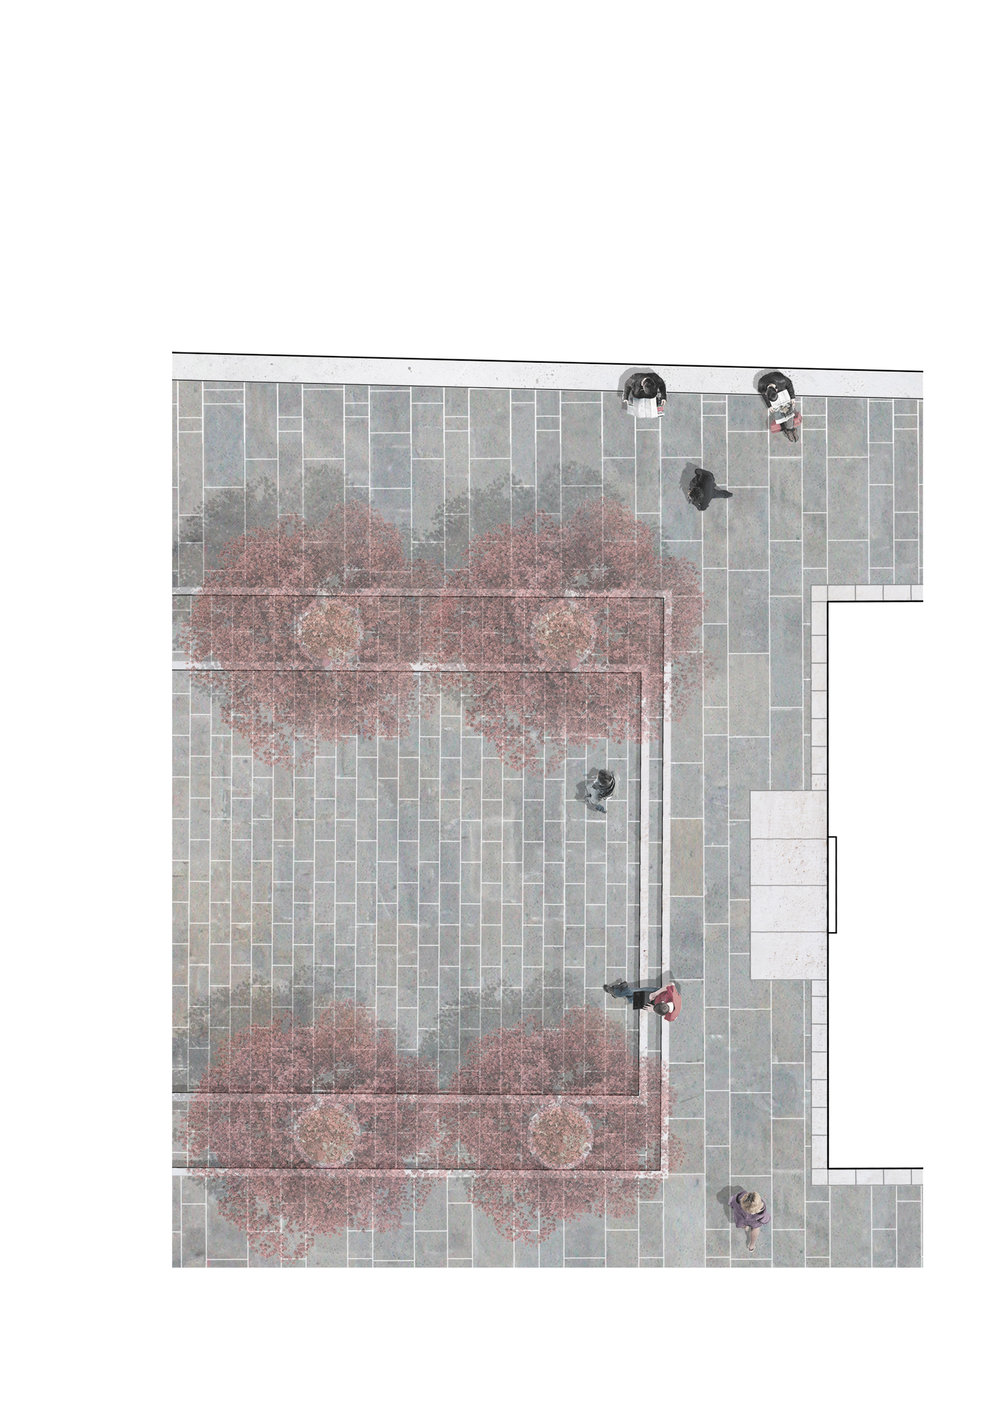 Architecture_Kombinat-Tina Rugelj_plan-infront of the church_Brolo square.jpg